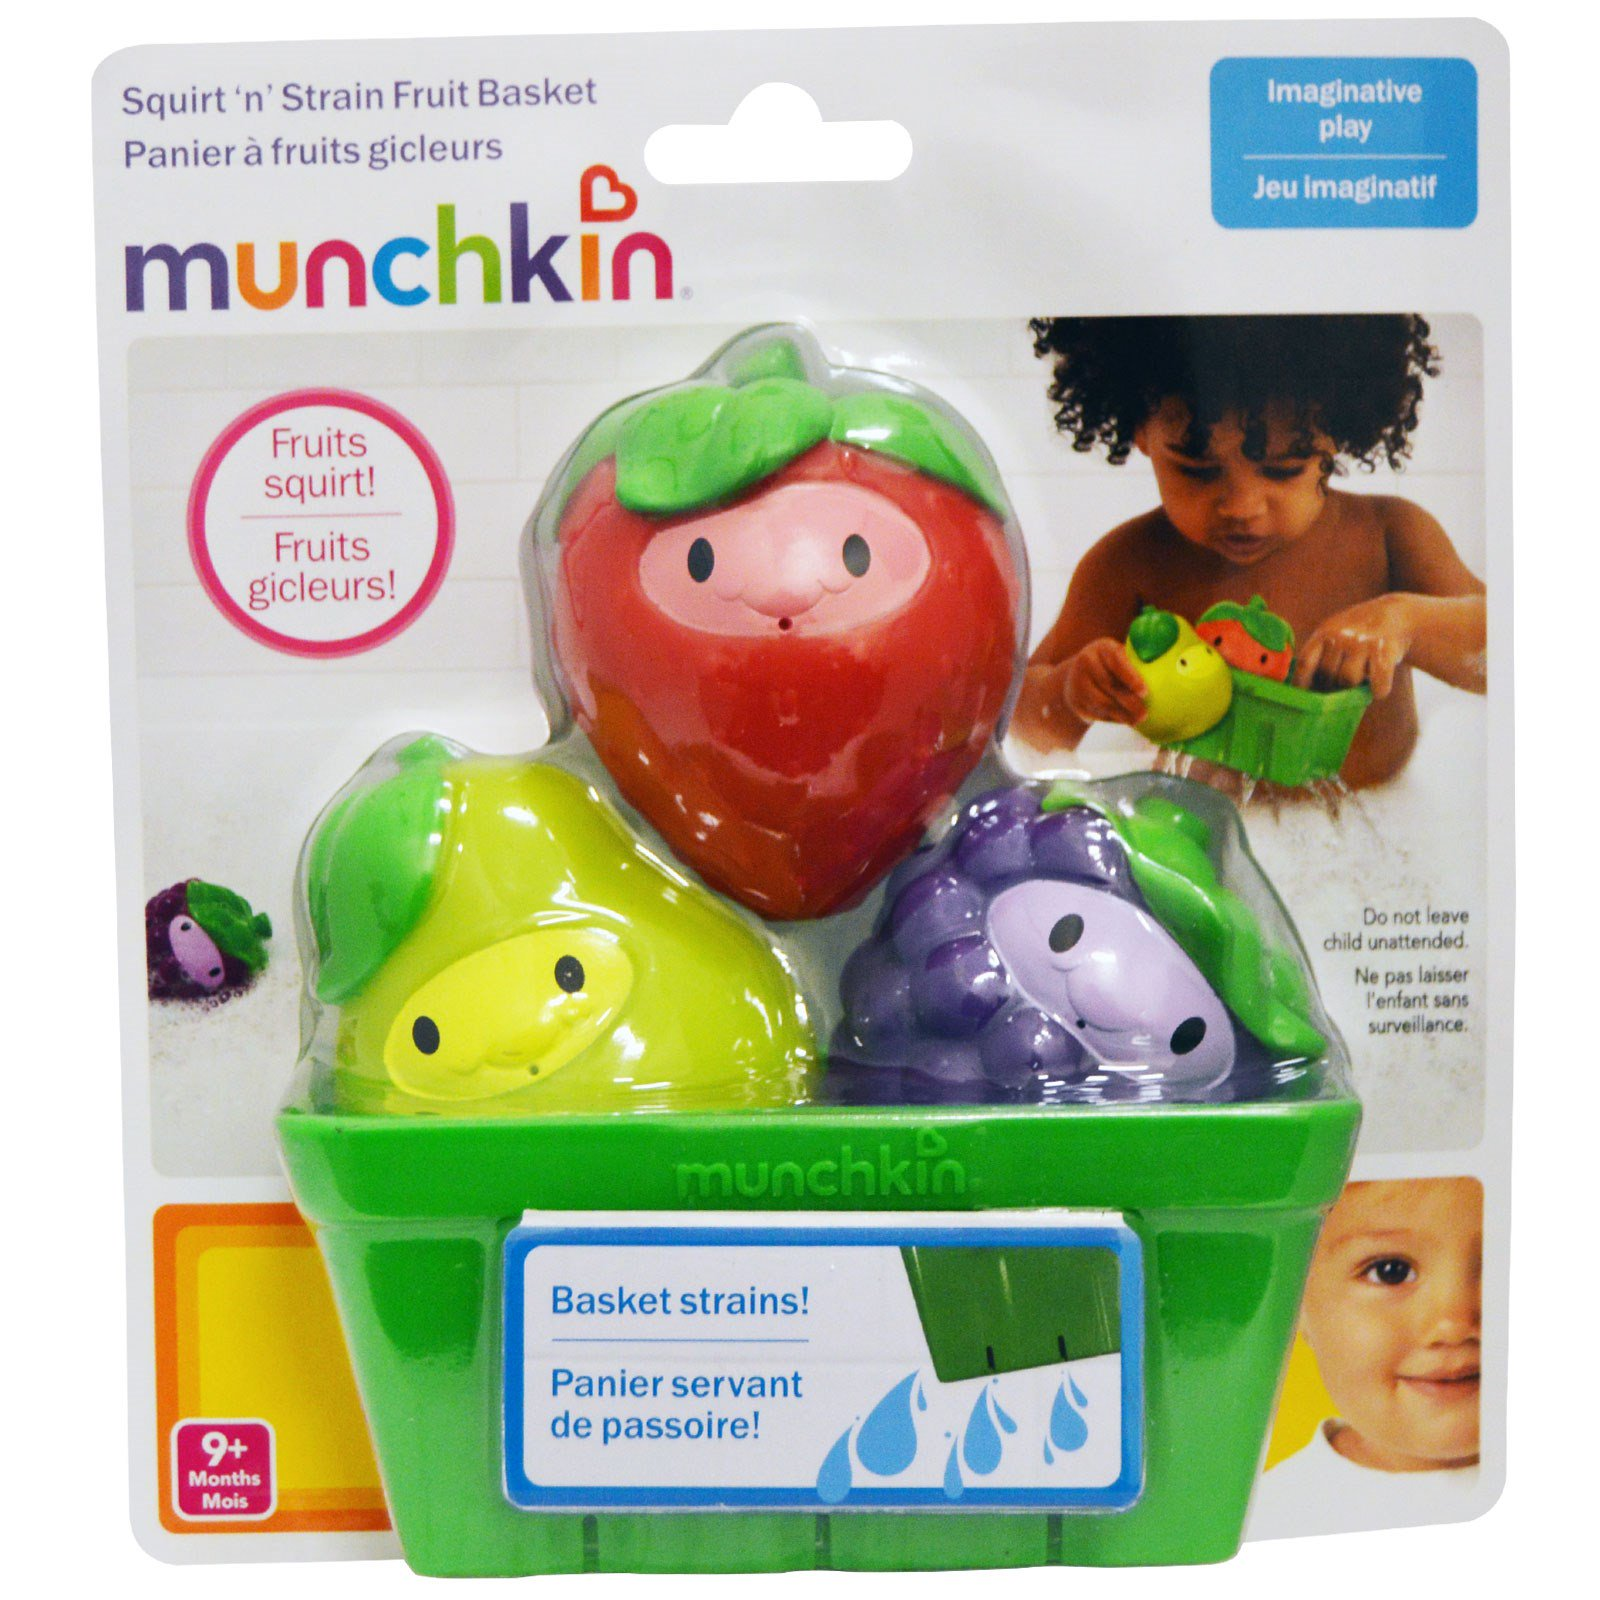 Munchkin Squirt n Strain Fruit Basket 9 Months 1 Toy Basket